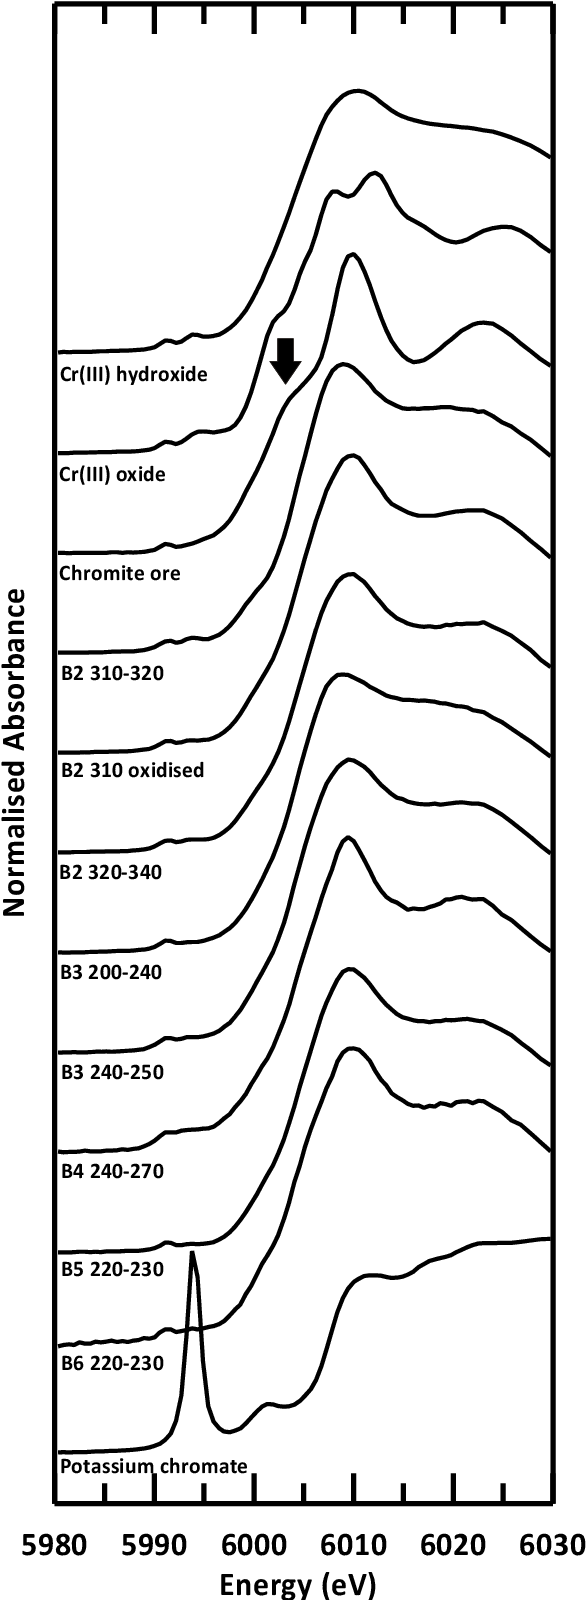 Figure 4.3 Normalised chromium K-edge XANES of soil samples and synthetic standards. Arrow indicates a distinctive curve inflection present at 6003 eV in the chromite ore spectra.